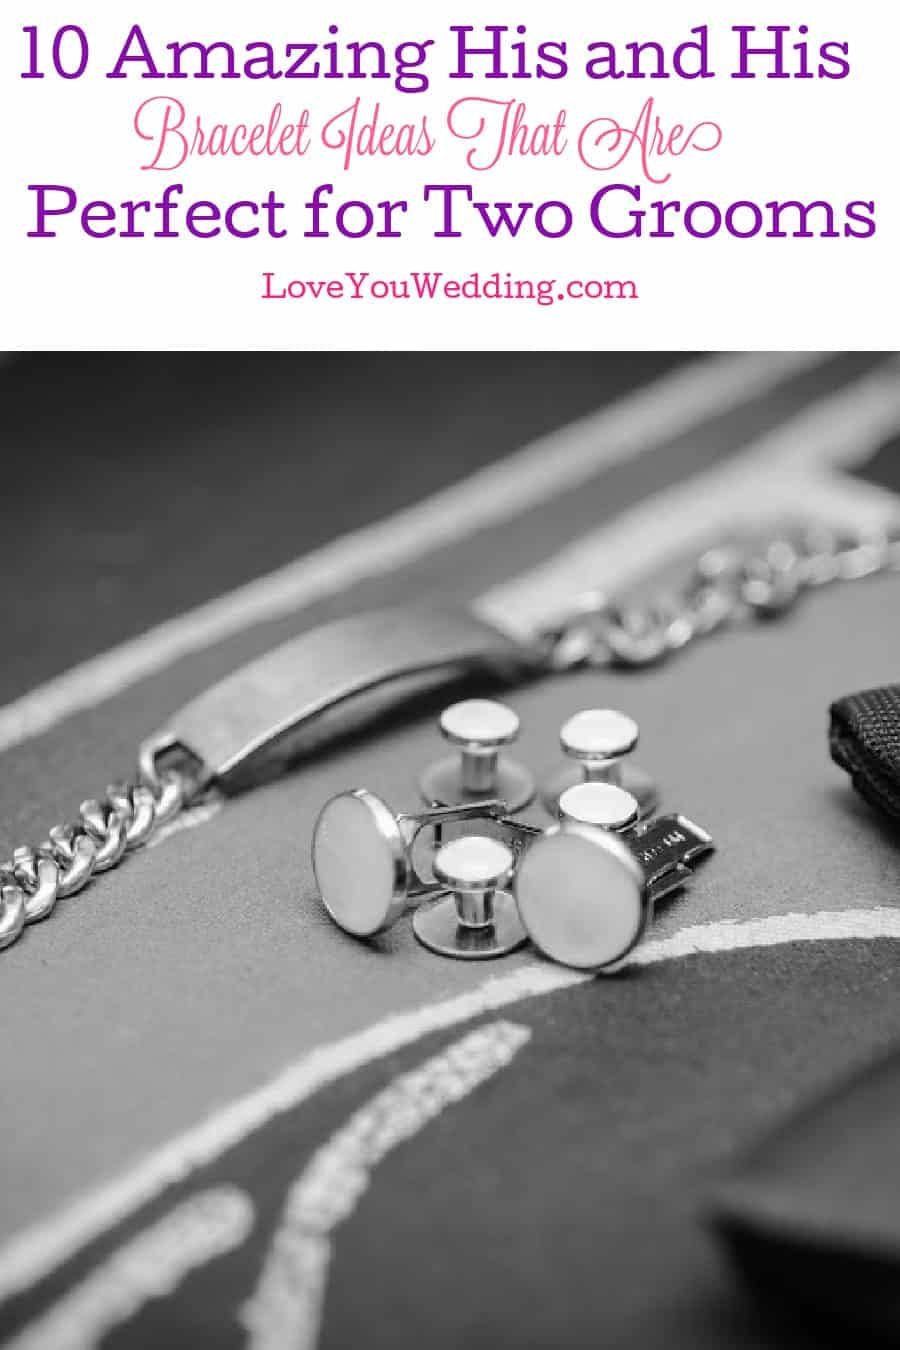 These his and his bracelets make beautiful engagement ring alternatives to give each other or gifts to give two grooms. Take a look!